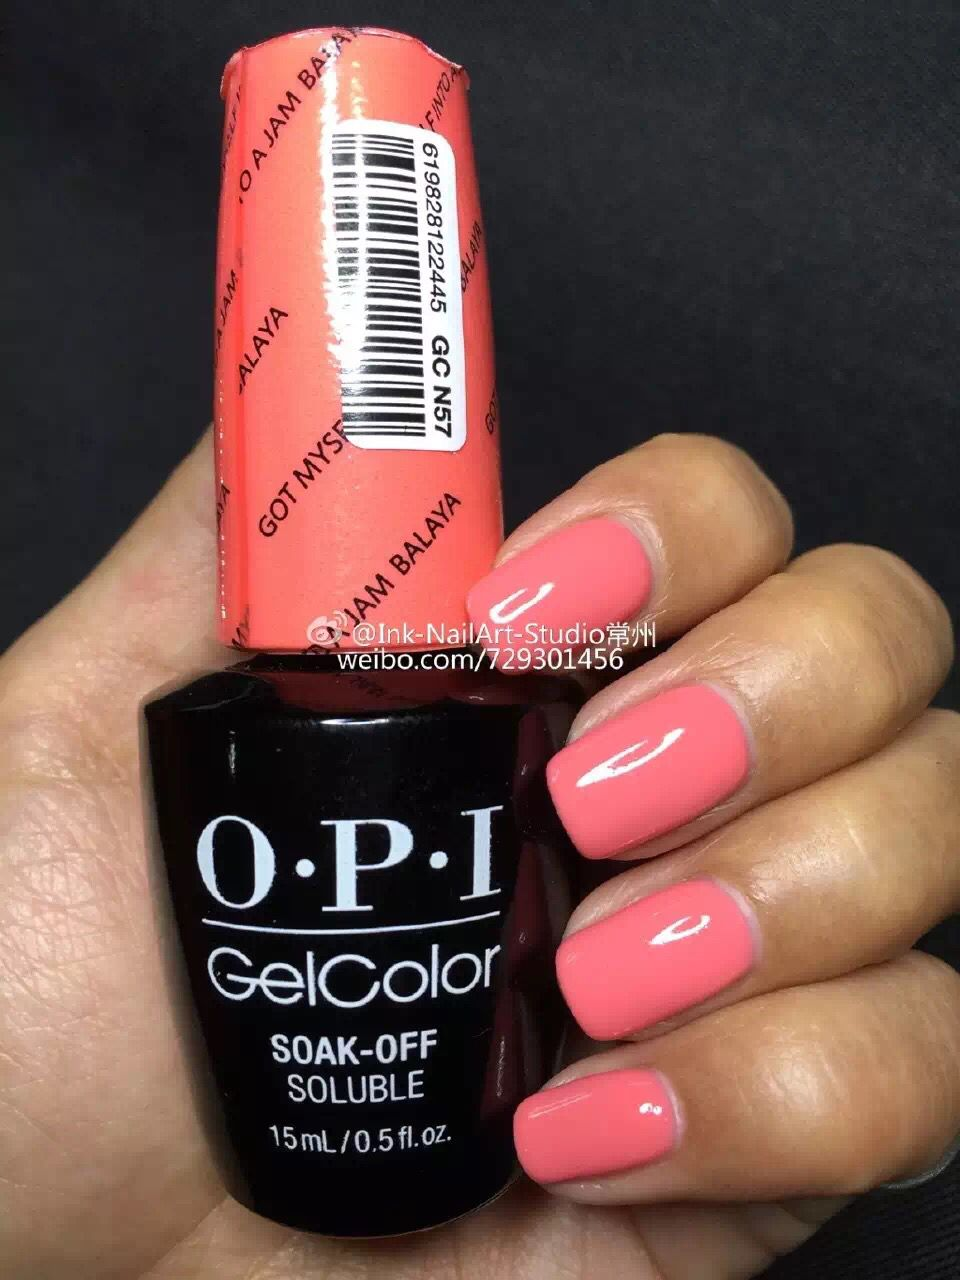 OPI New Orleans | OPI Gelcolor | Pinterest | OPI, Makeup and Gel color